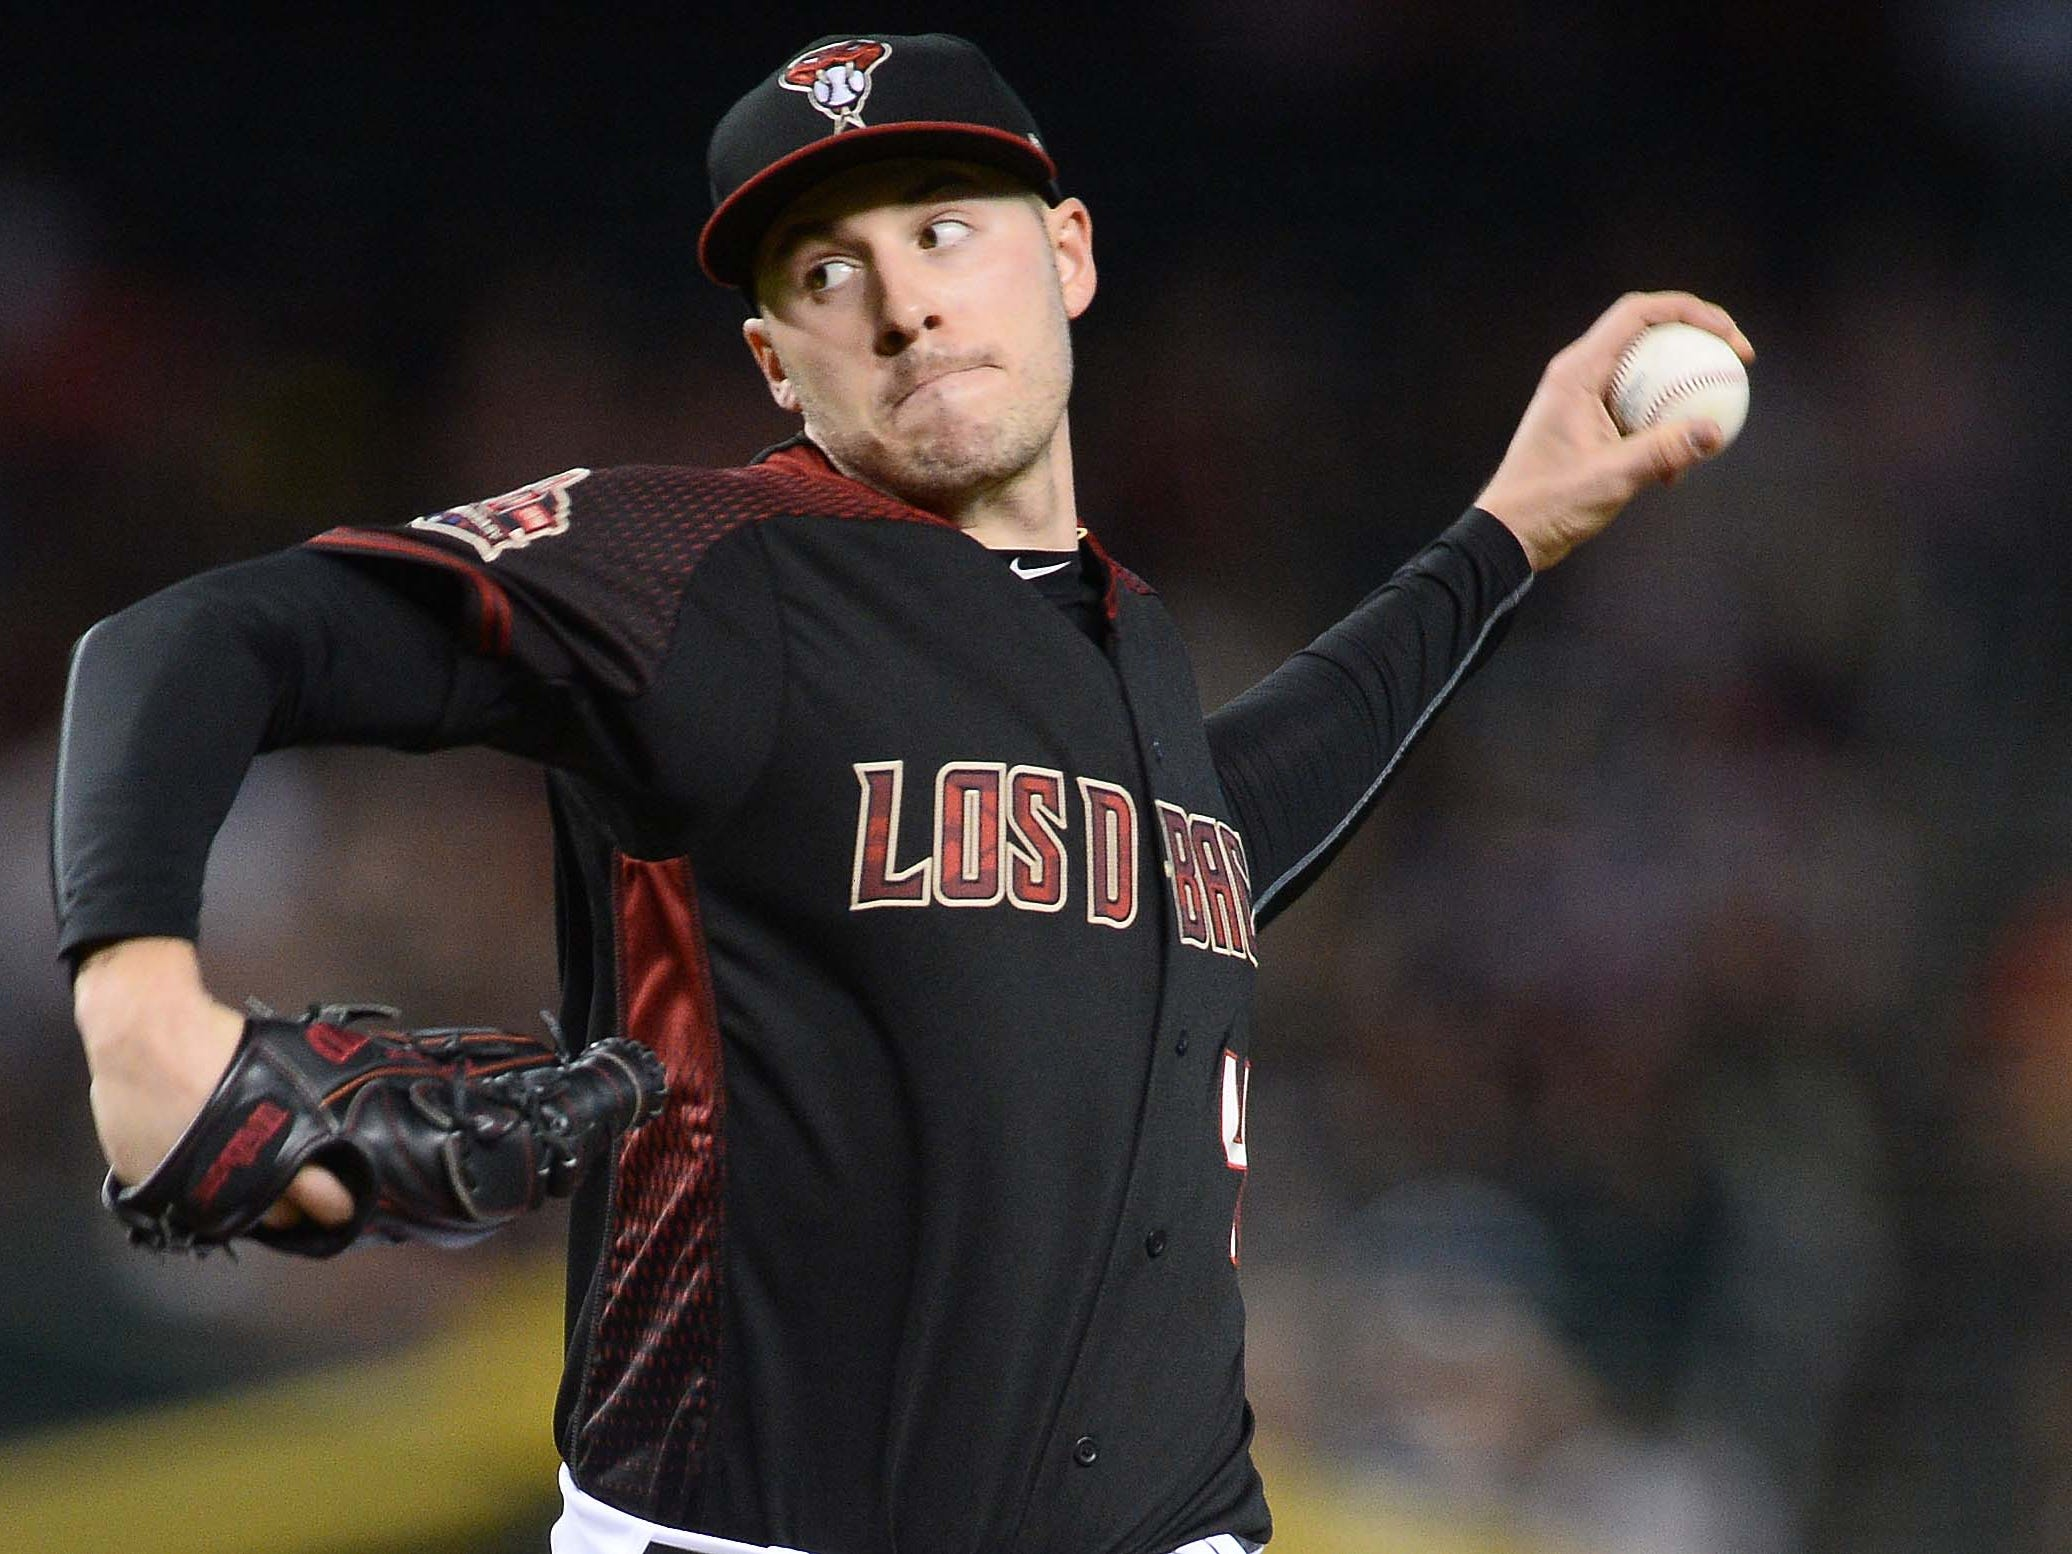 Patrick Corbin (29, LHP, Diamondbacks) – signed with Nationals, 6 years/$140 million